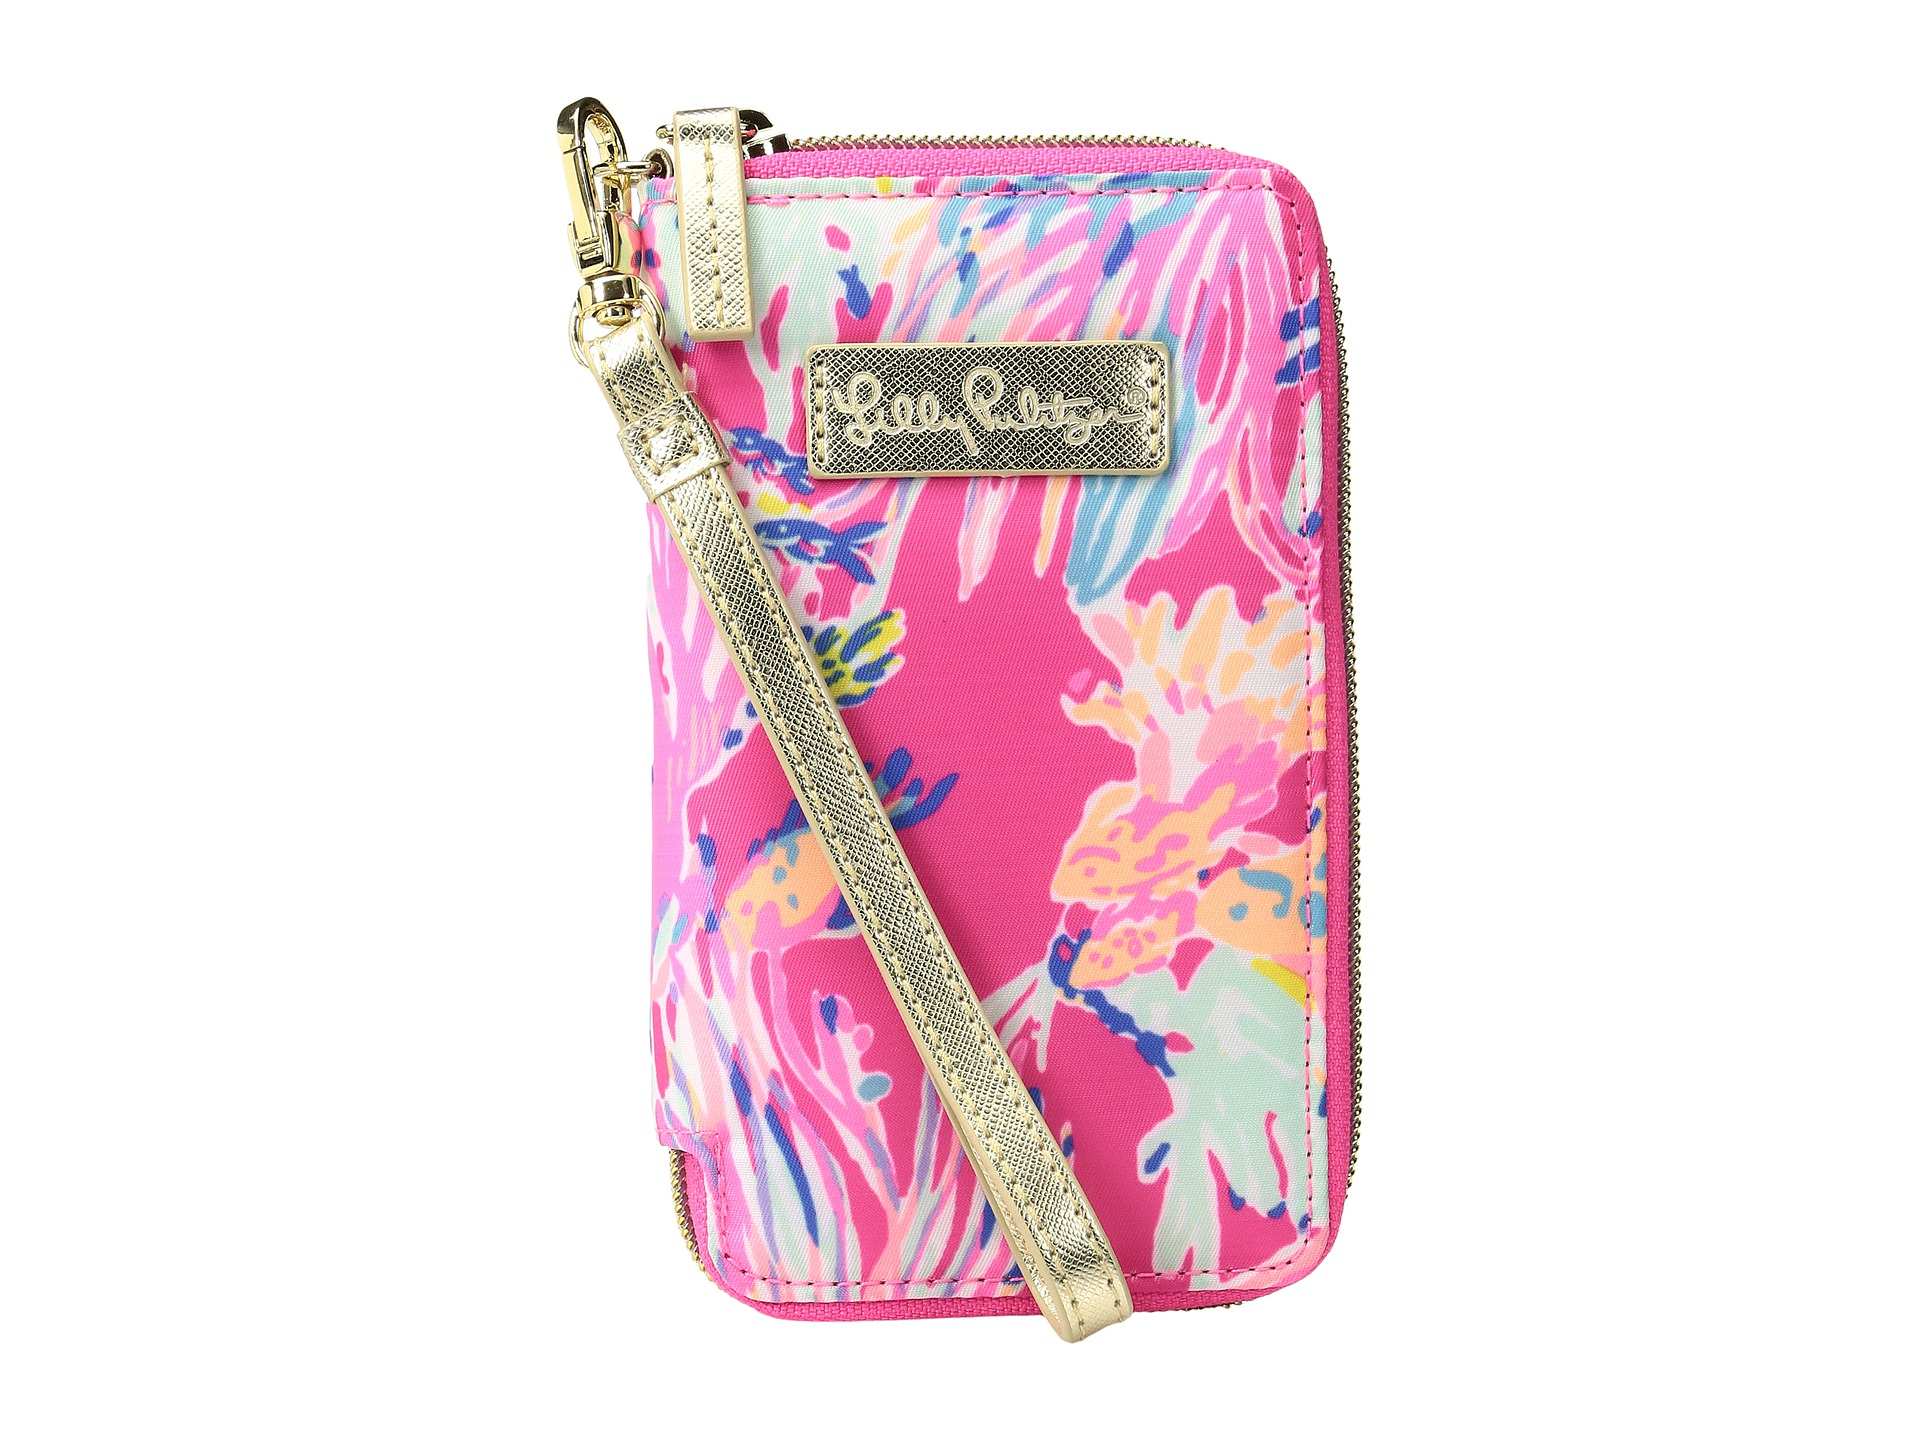 Lilly Pulitzer Phone Case | Lilly Pulitzer Iphone 5c Case | Phi Mu Lilly Pulitzer